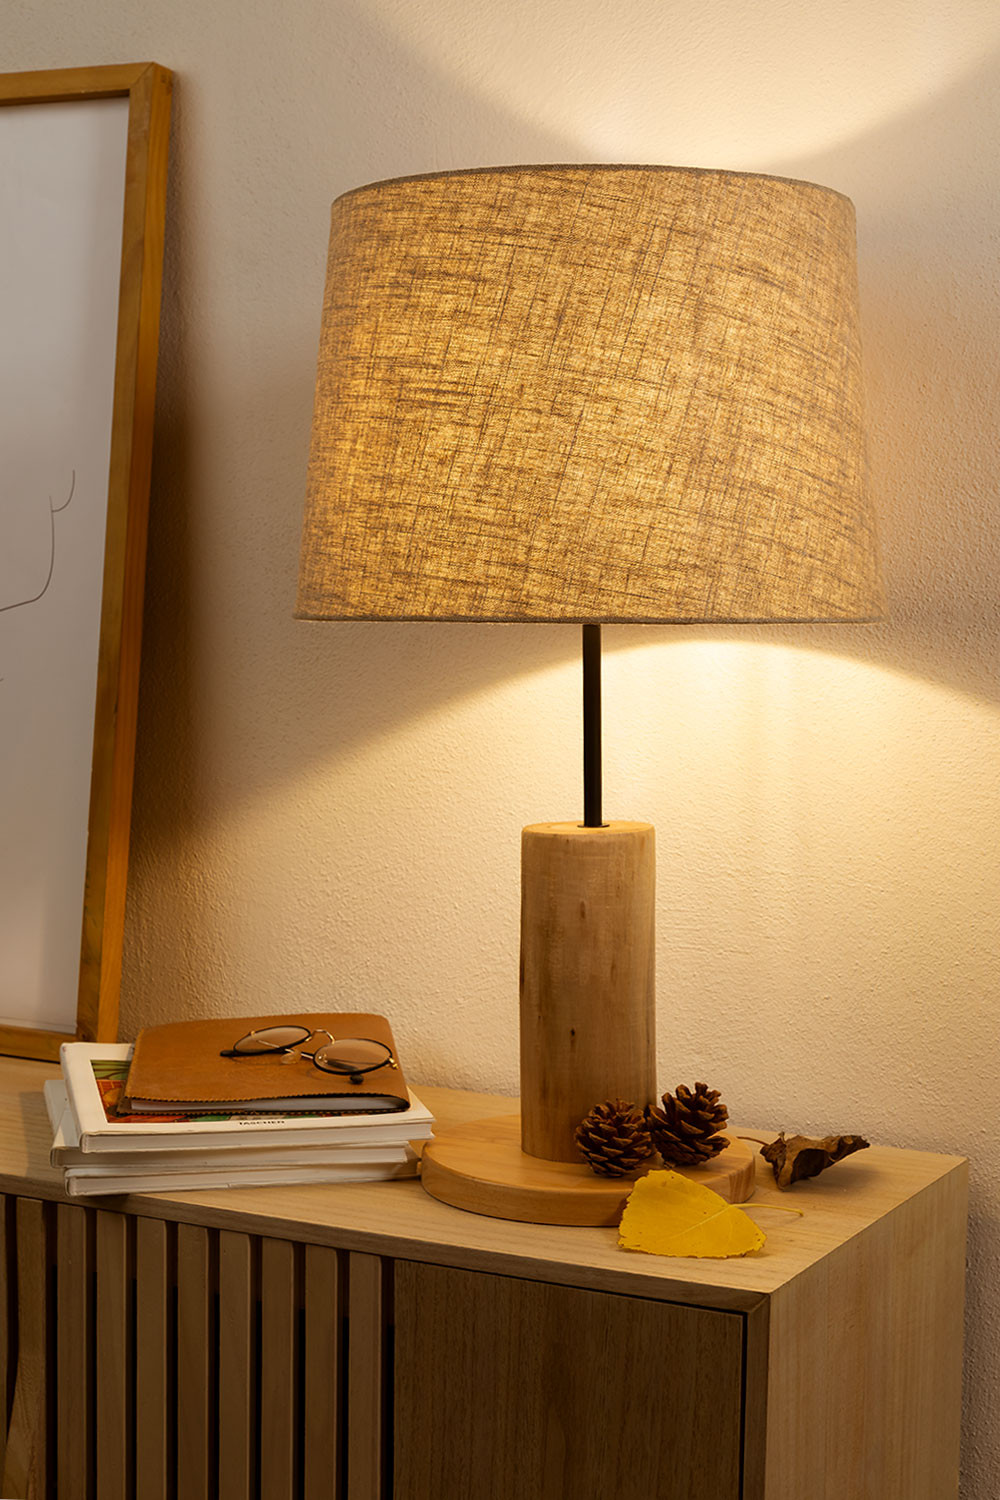 Table Lamp in Linen and Wood Ulga, gallery image 1